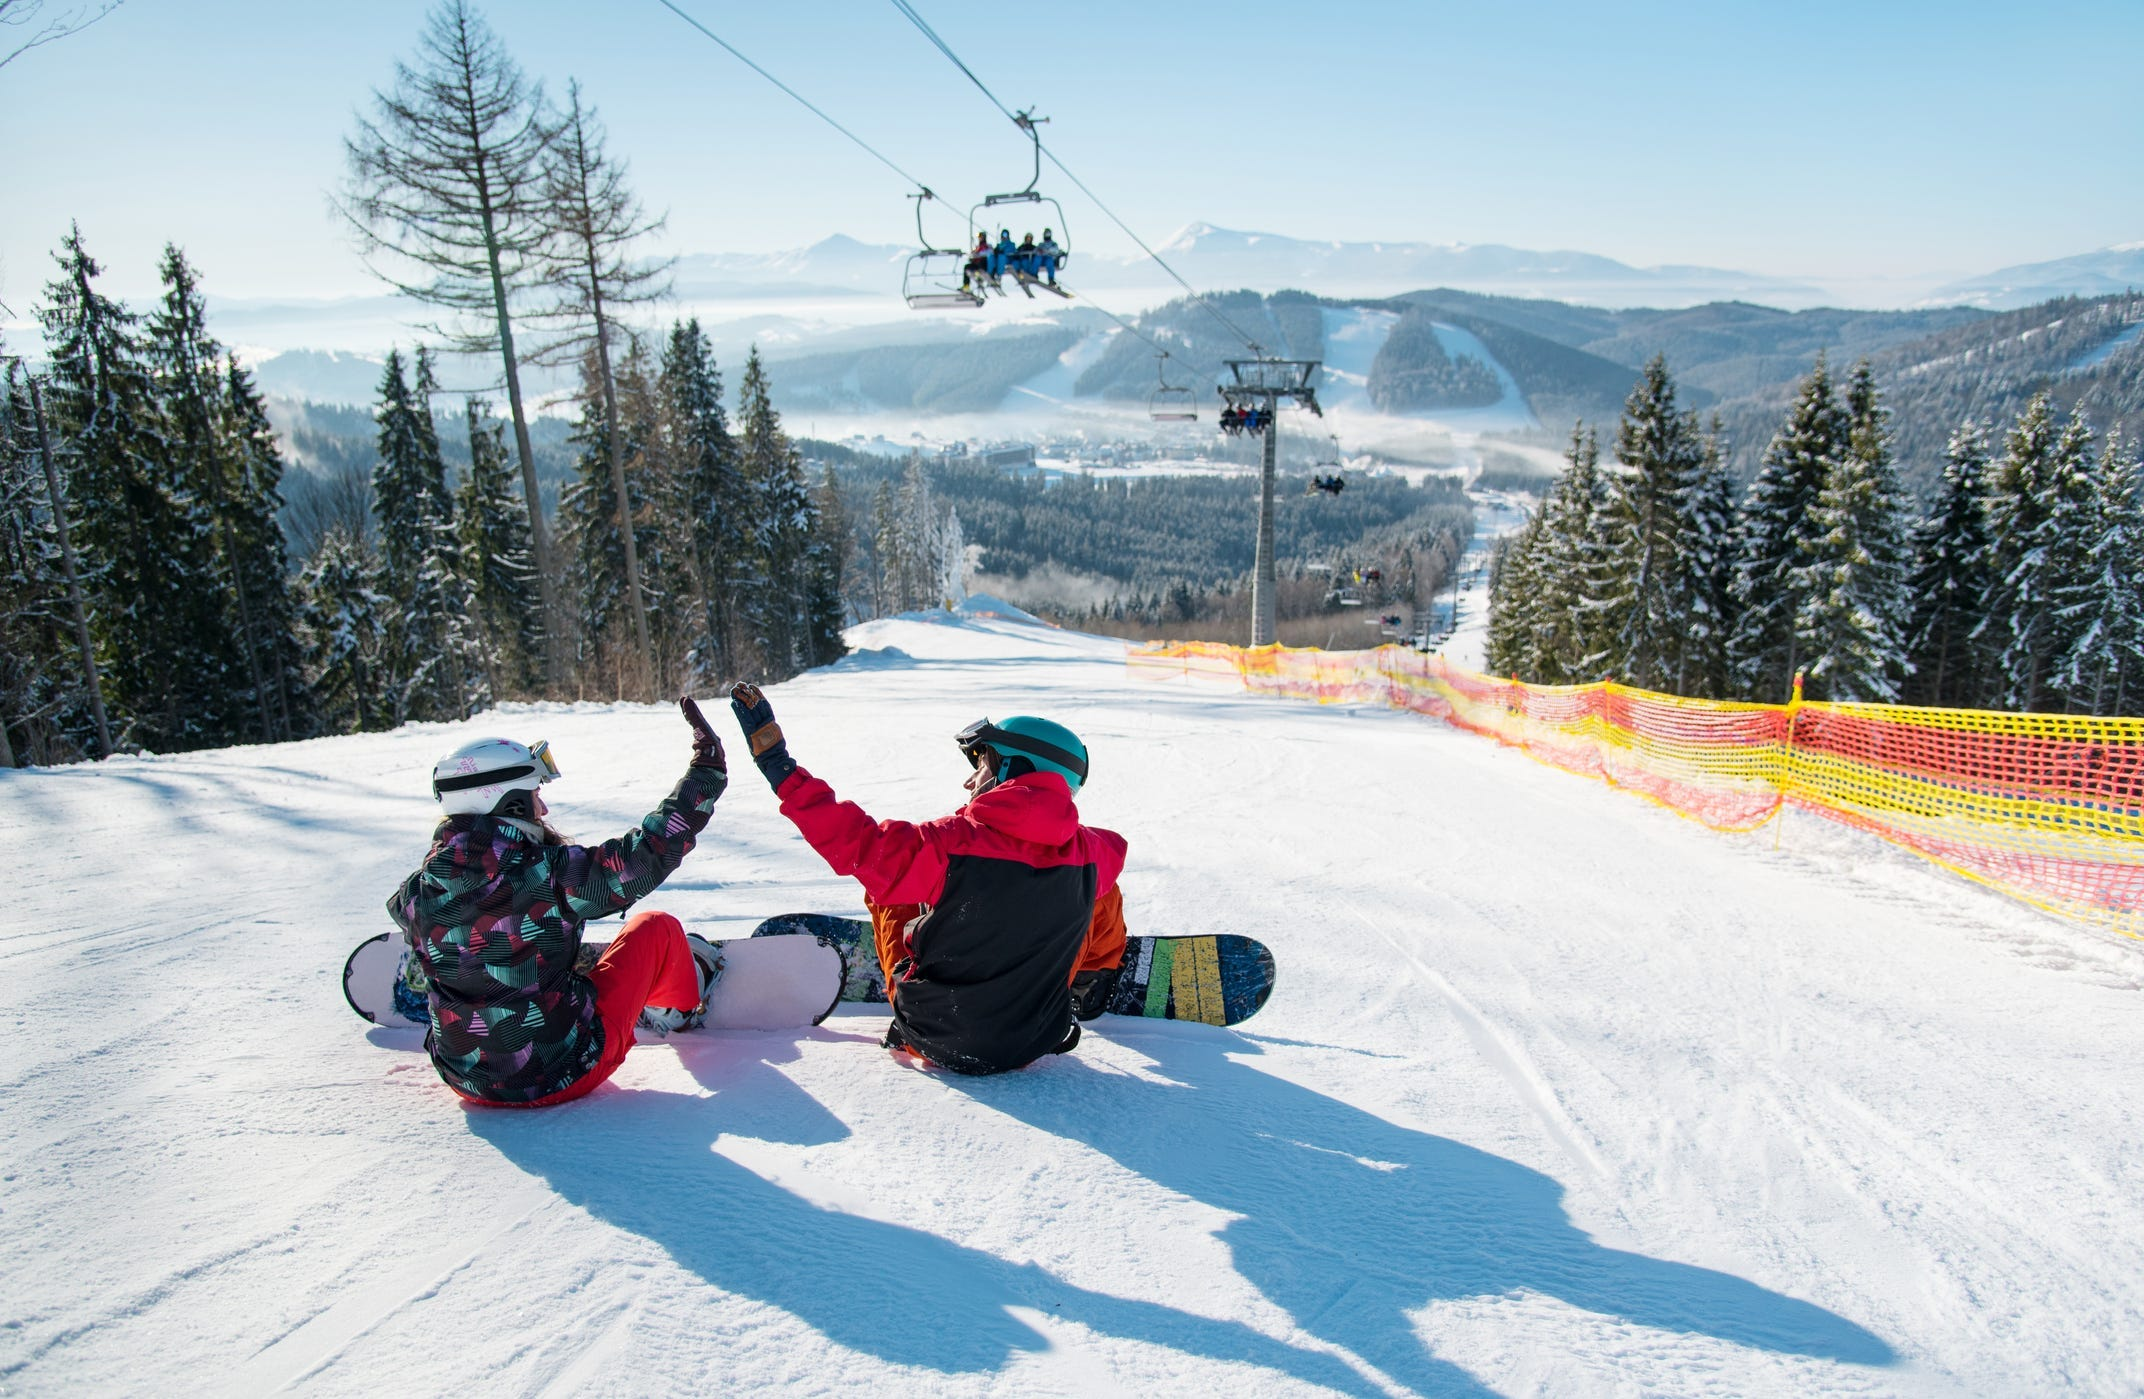 These are the best ski resorts in North America, according to readers